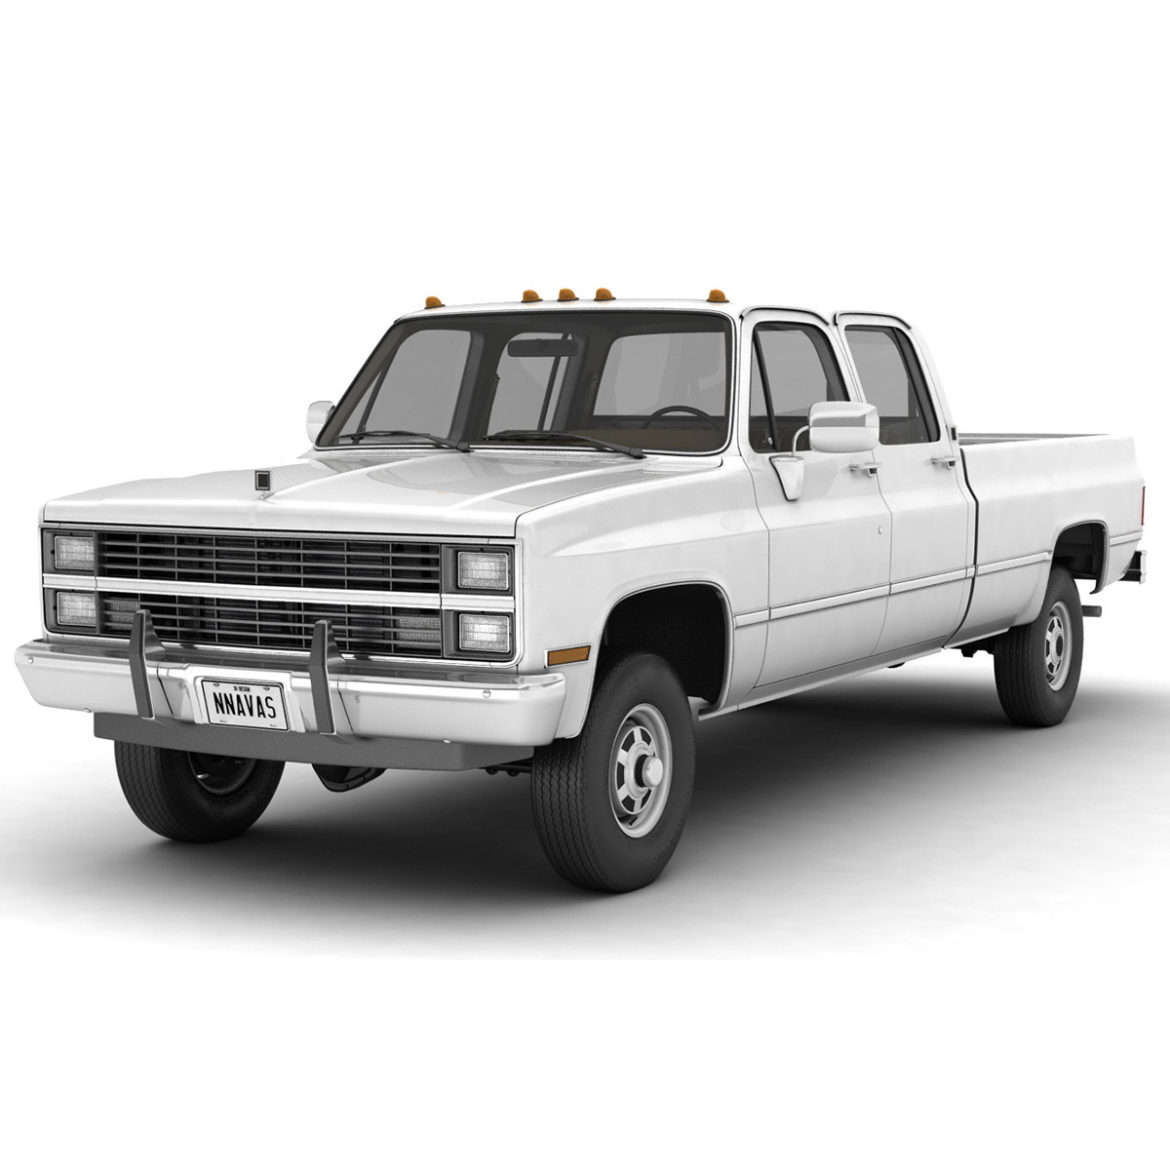 generic 4wd pickup truck 5 3d model max fbx obj 3ds jpeg 304884